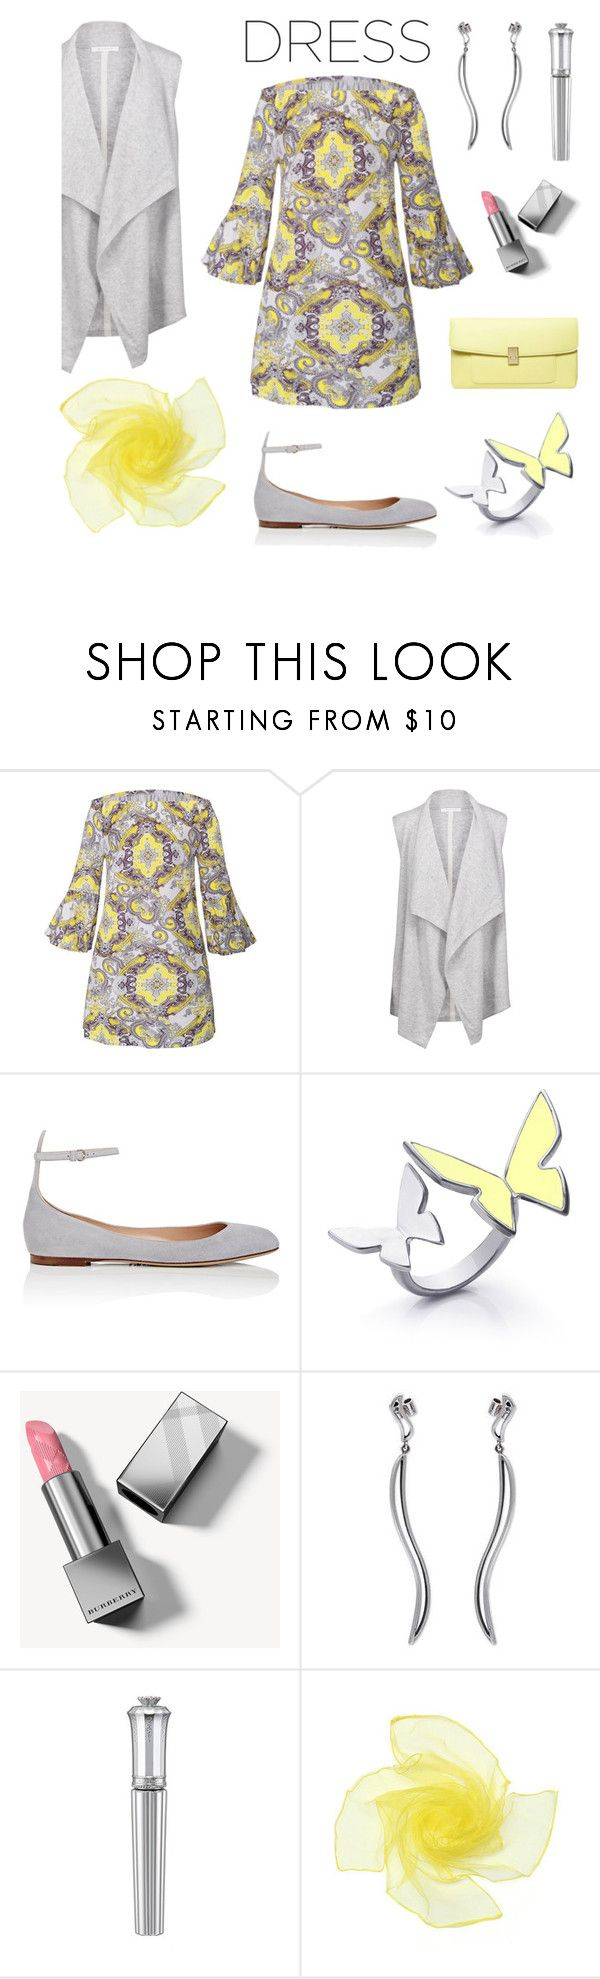 """""""Off-shoulder dress"""" by kenga08 ❤ liked on Polyvore featuring WithChic, Duffy, Valentino, Burberry, NOVICA, Morgan Lane, Dorothy Perkins and offshoulderdress"""